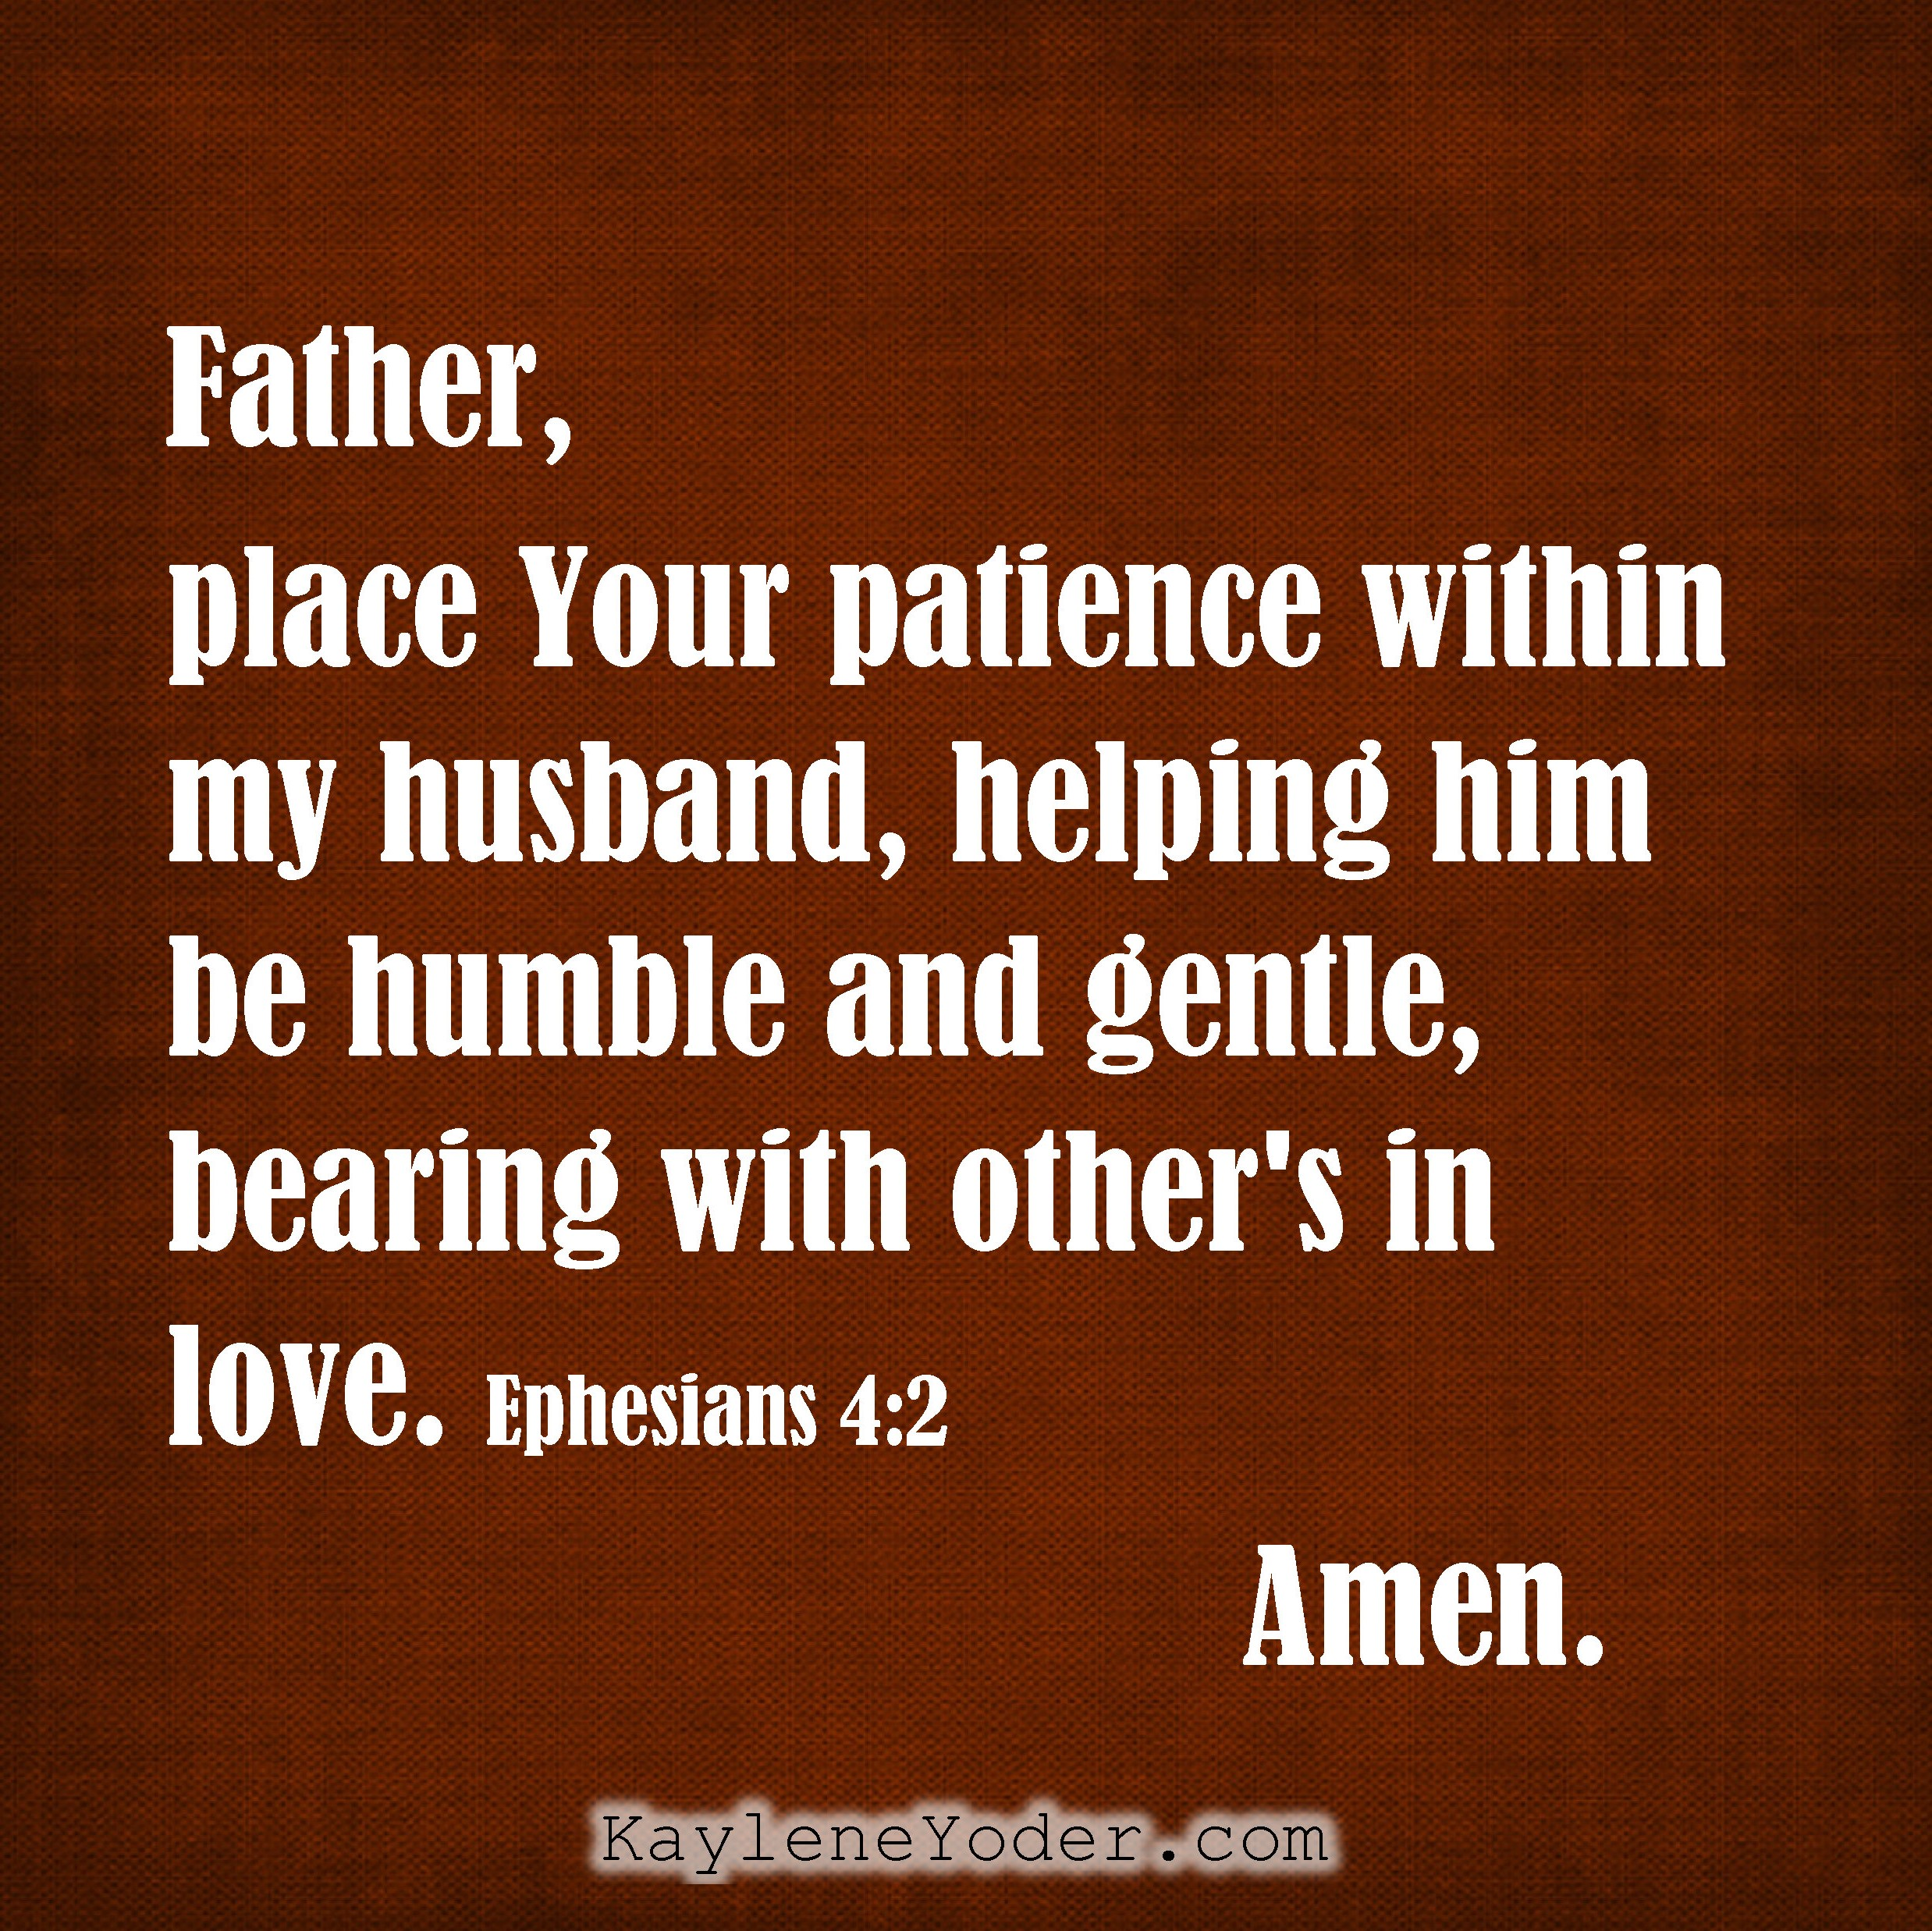 a prayer for your husband to grow in patience kaylene yoder